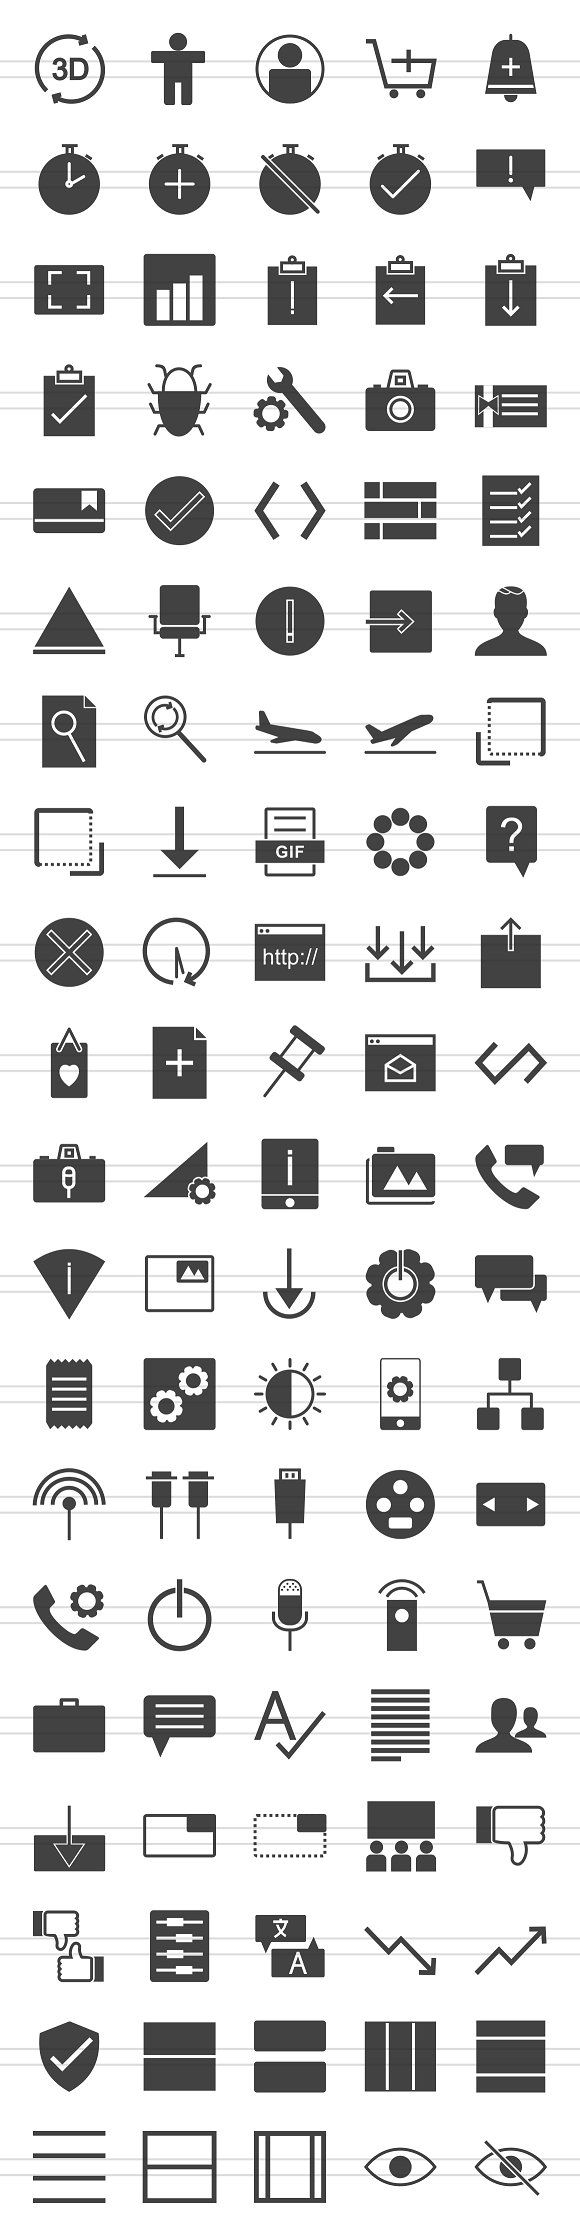 100 Material Design Glyph Icons in Graphics - product preview 1